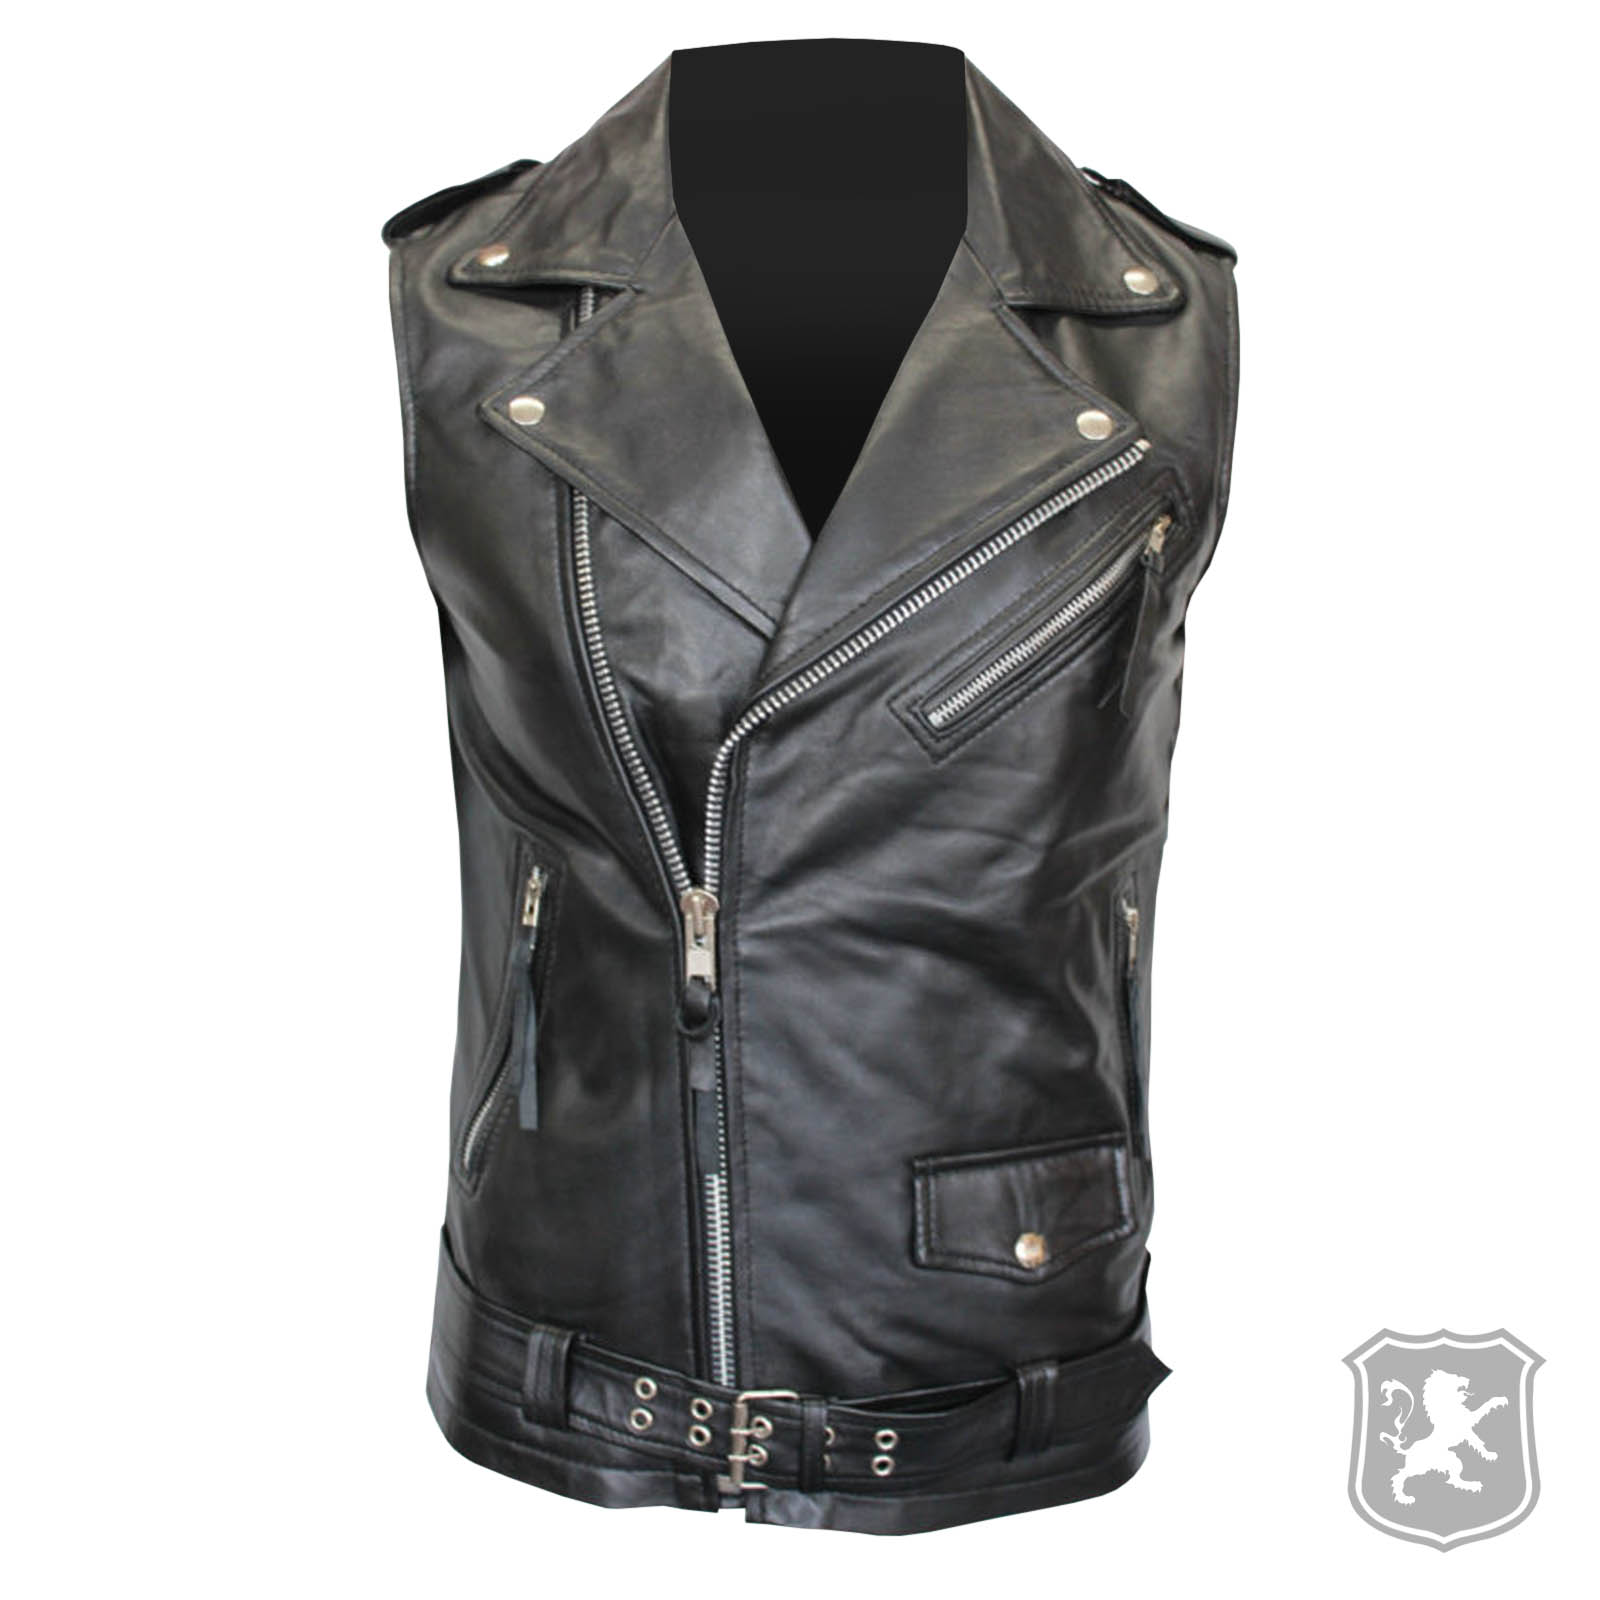 e8e2191aef0619 Brando Vintage Motorcycle Black Leather Vest